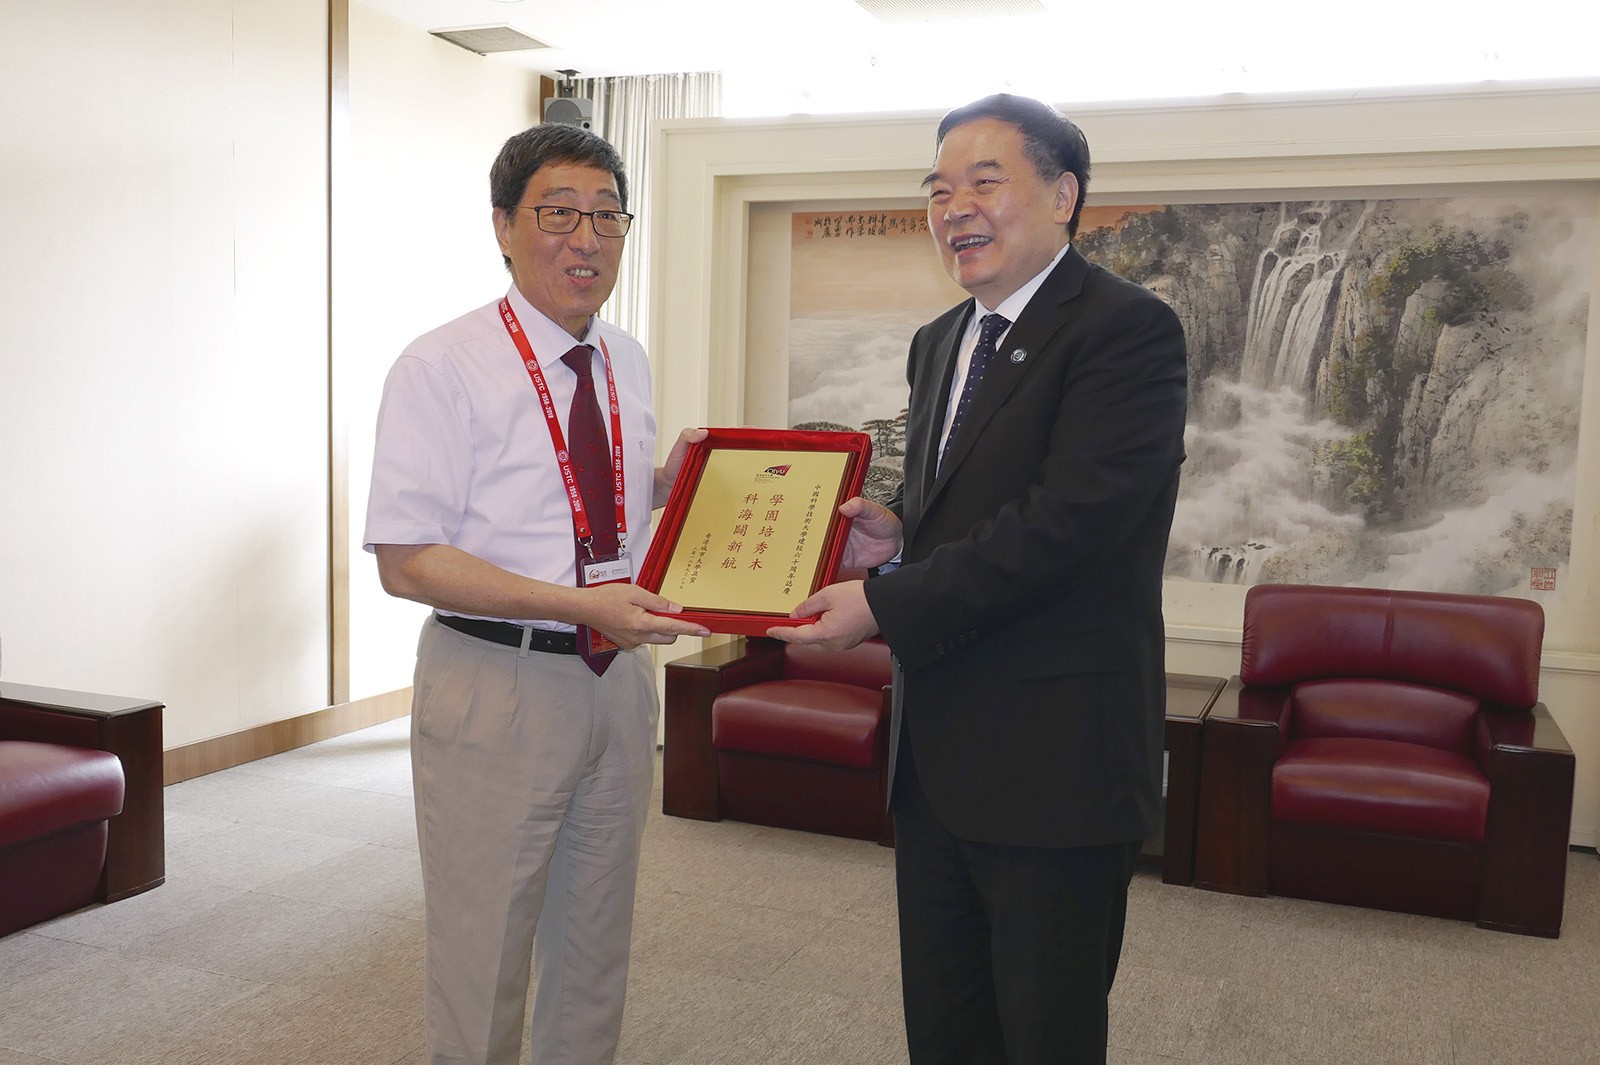 Professor Kuo (left) presents a souvenir to Professor Bao Xinhe, President of USTC.